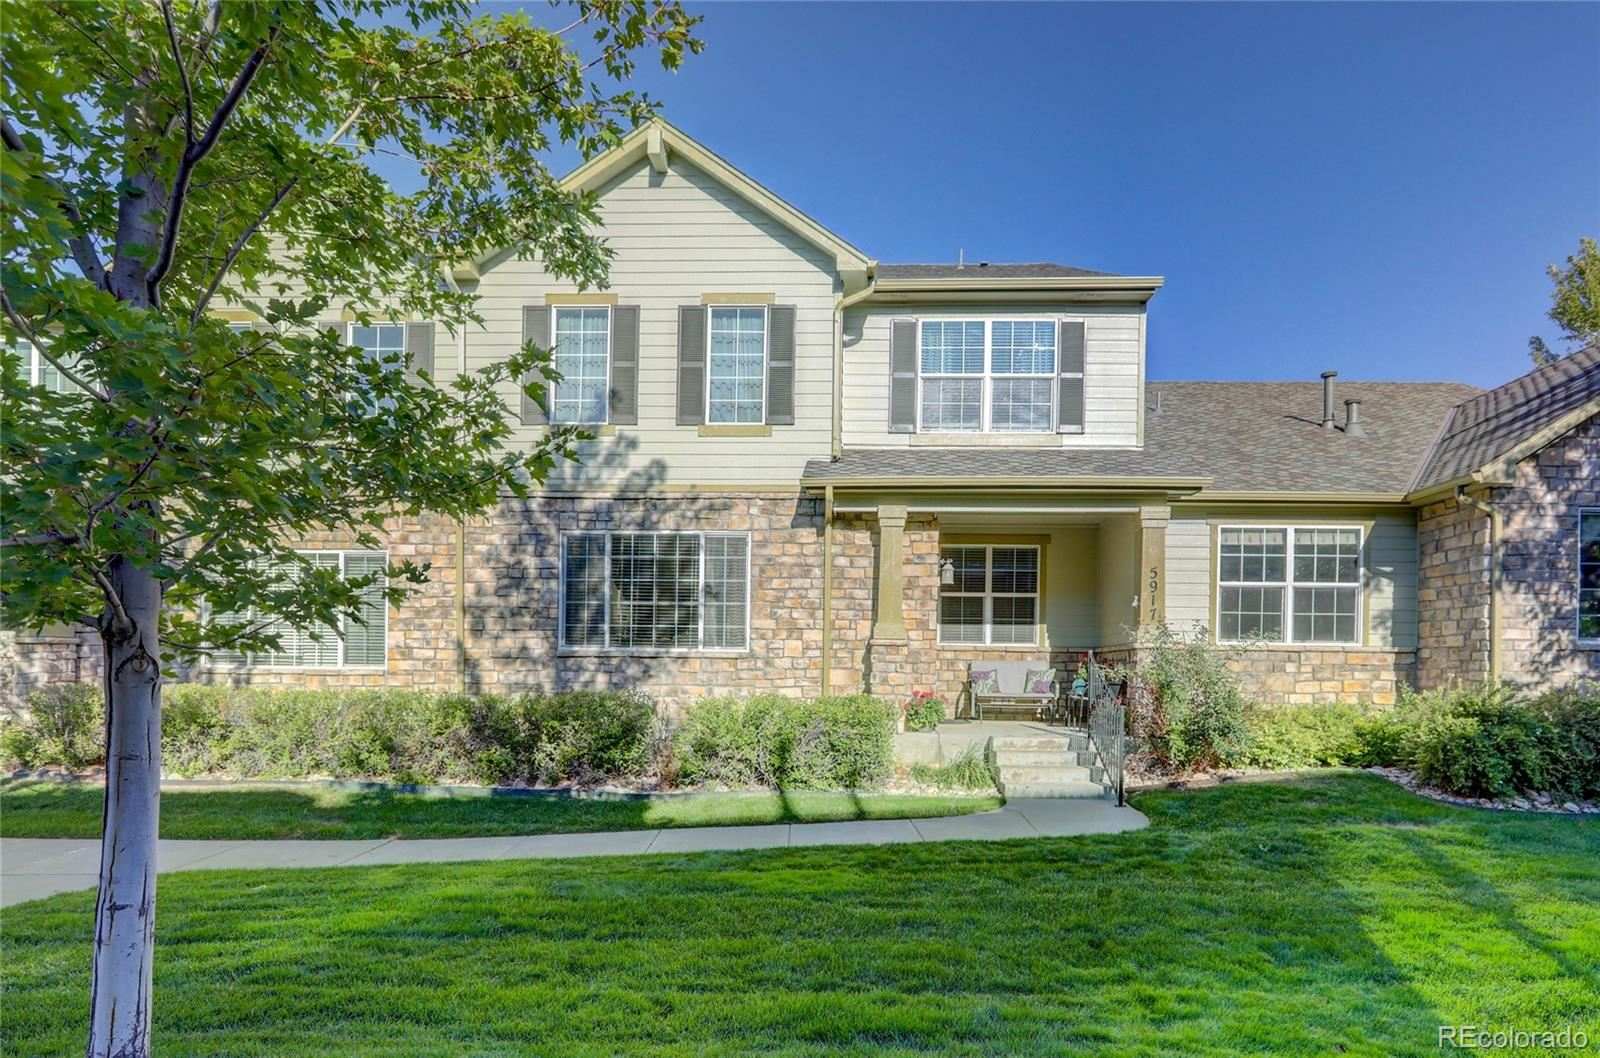 5917 S Youngfield Way, Littleton, CO 80127 - #: 3776705